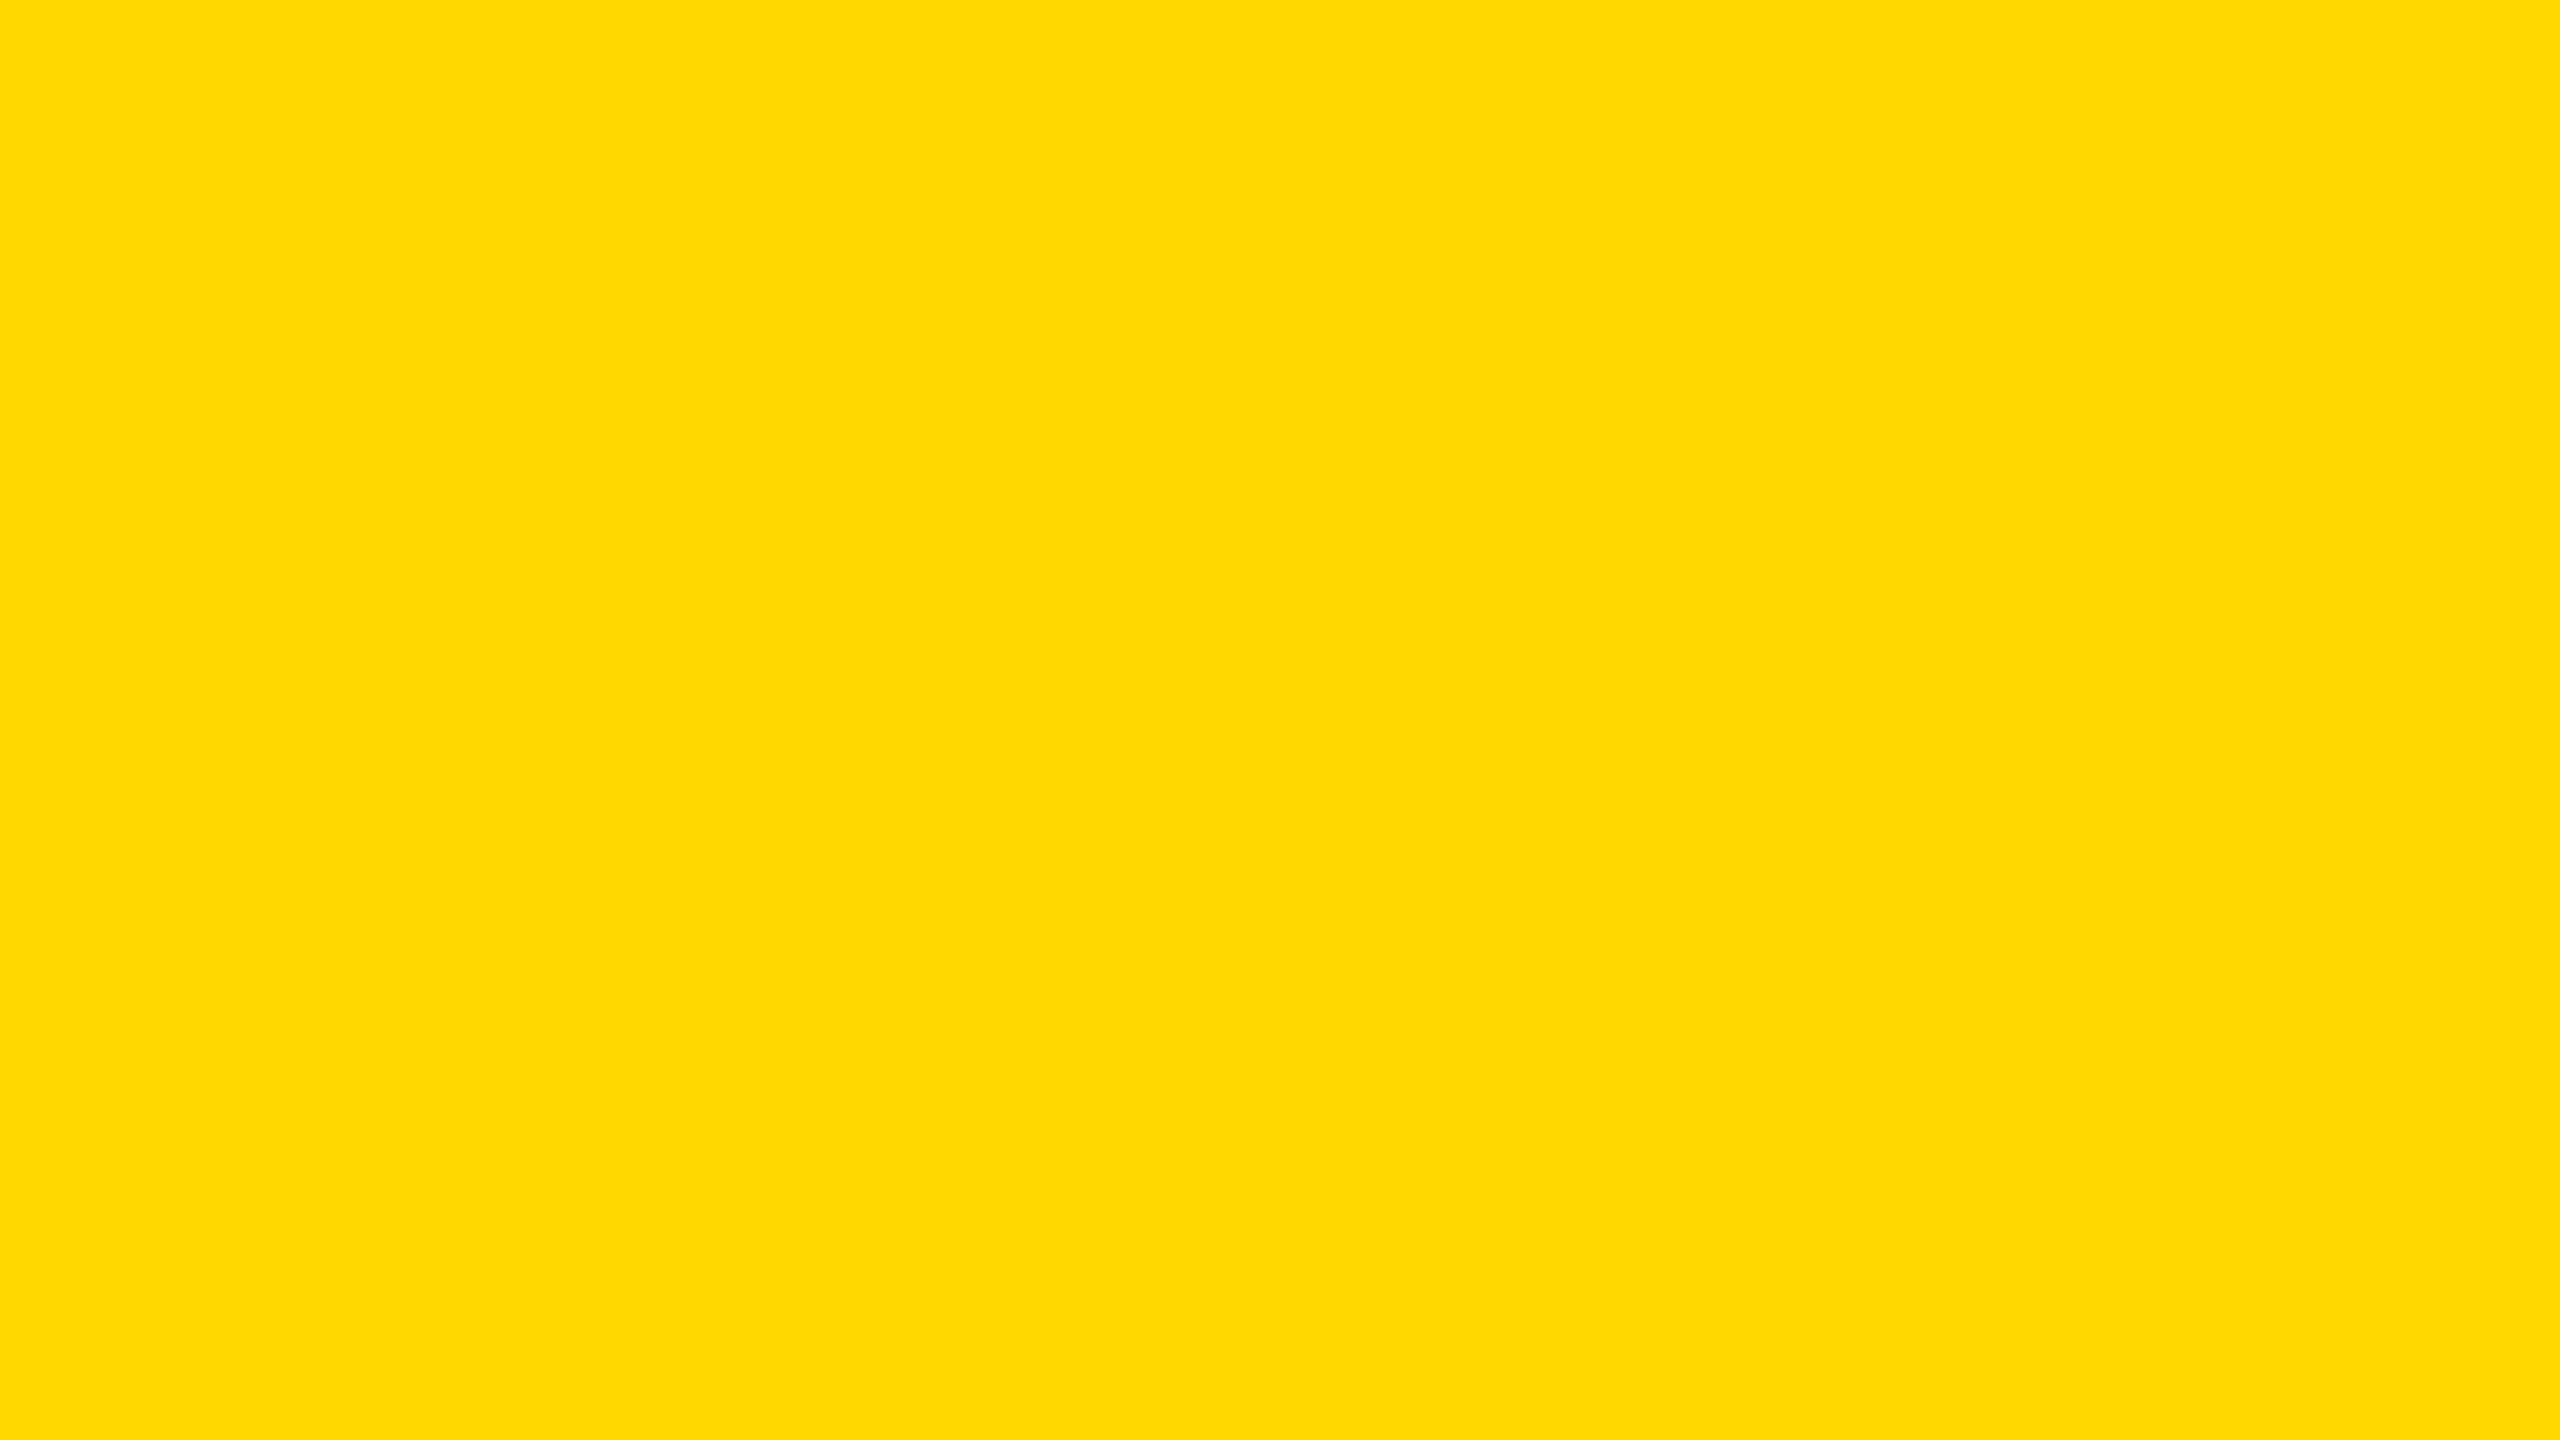 Backgrounds Yellow - Wallpaper Cave